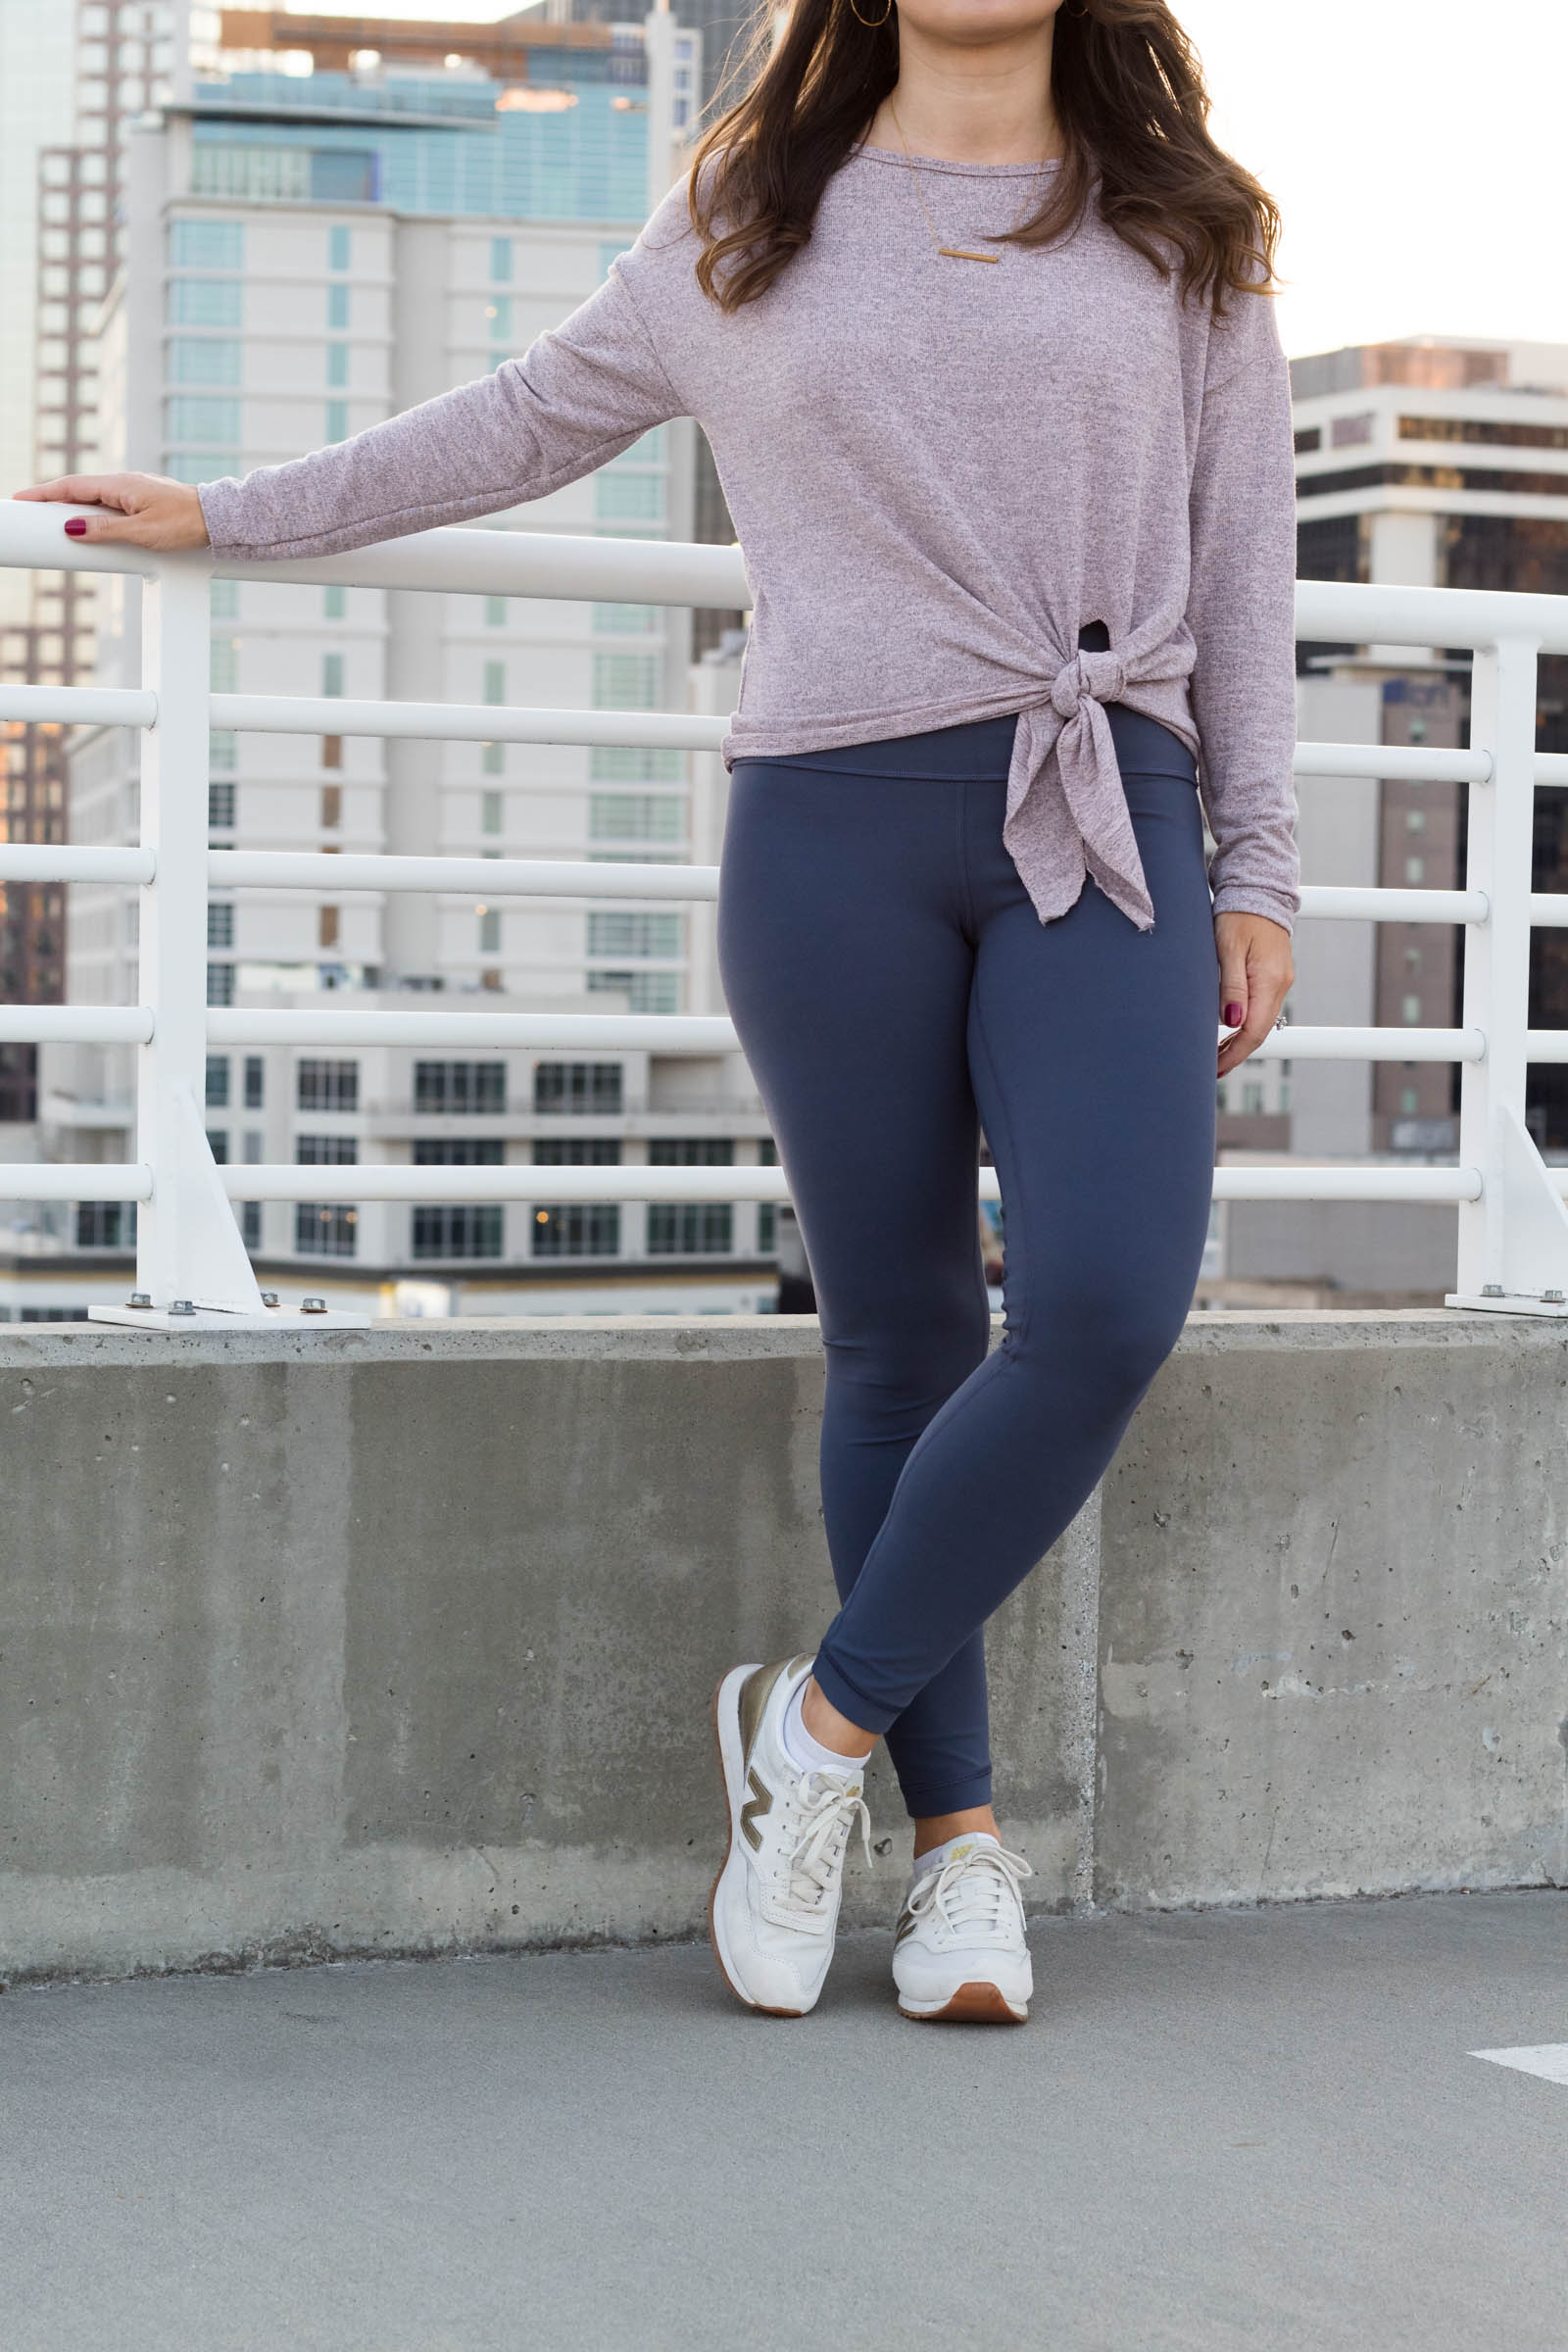 Rome Pink Drop Shoulder Criss Cross Tie Front T-Shirt, gold new balance sneakers, lululemon align pant